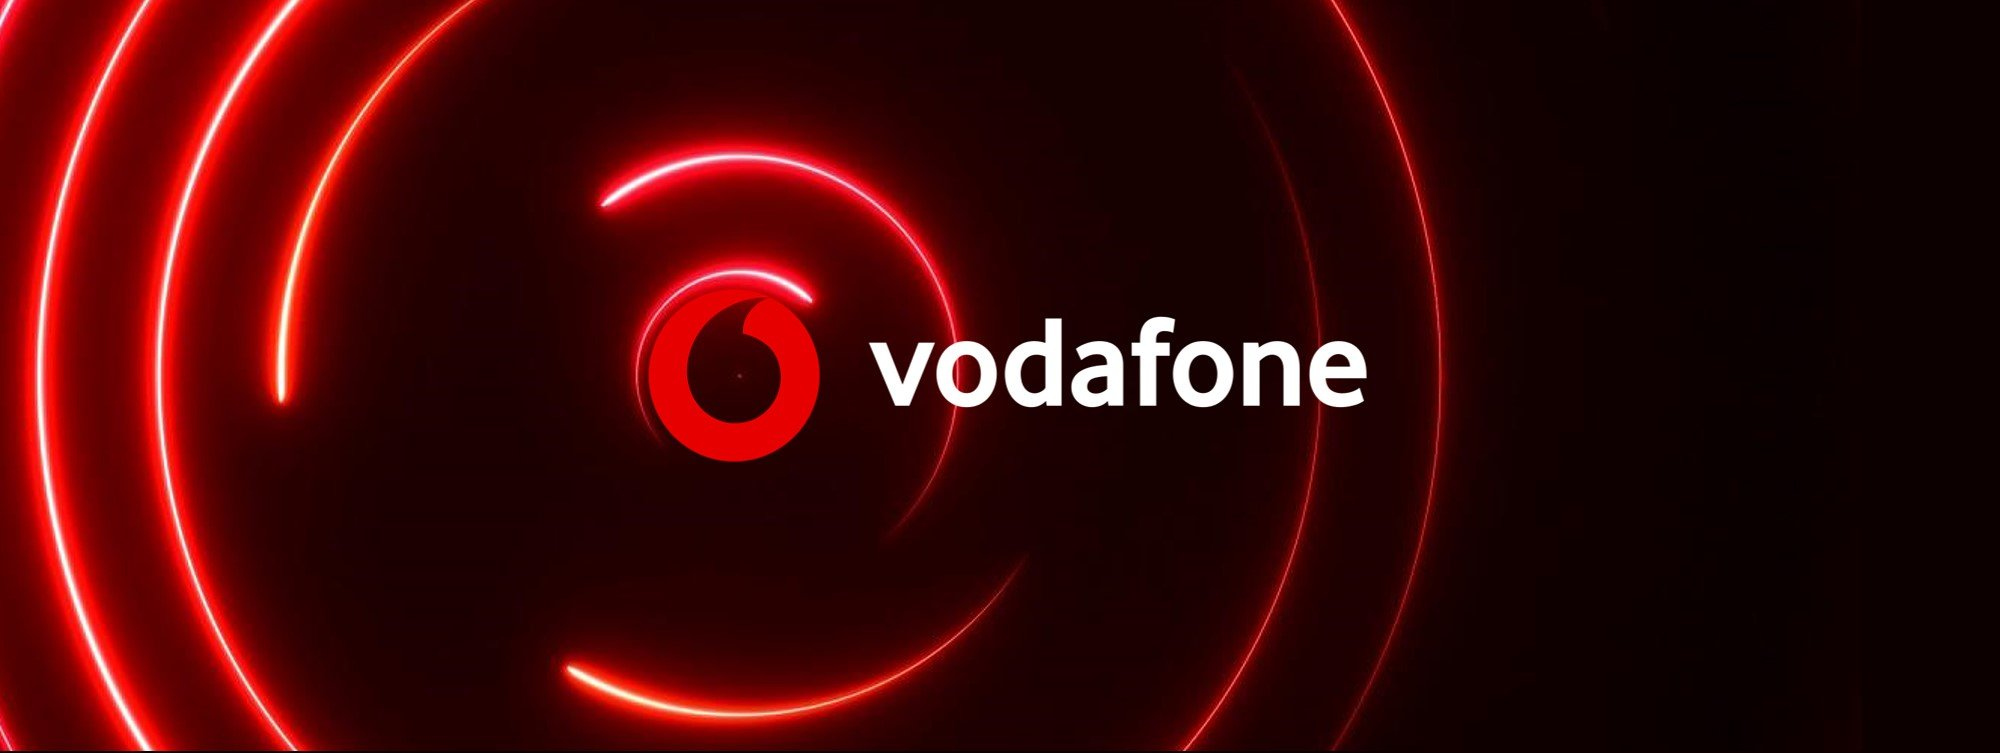 Vodafone Joins Forces with Porsche and HERE Technologies to Develop Real-time Warning System using 5G Technology